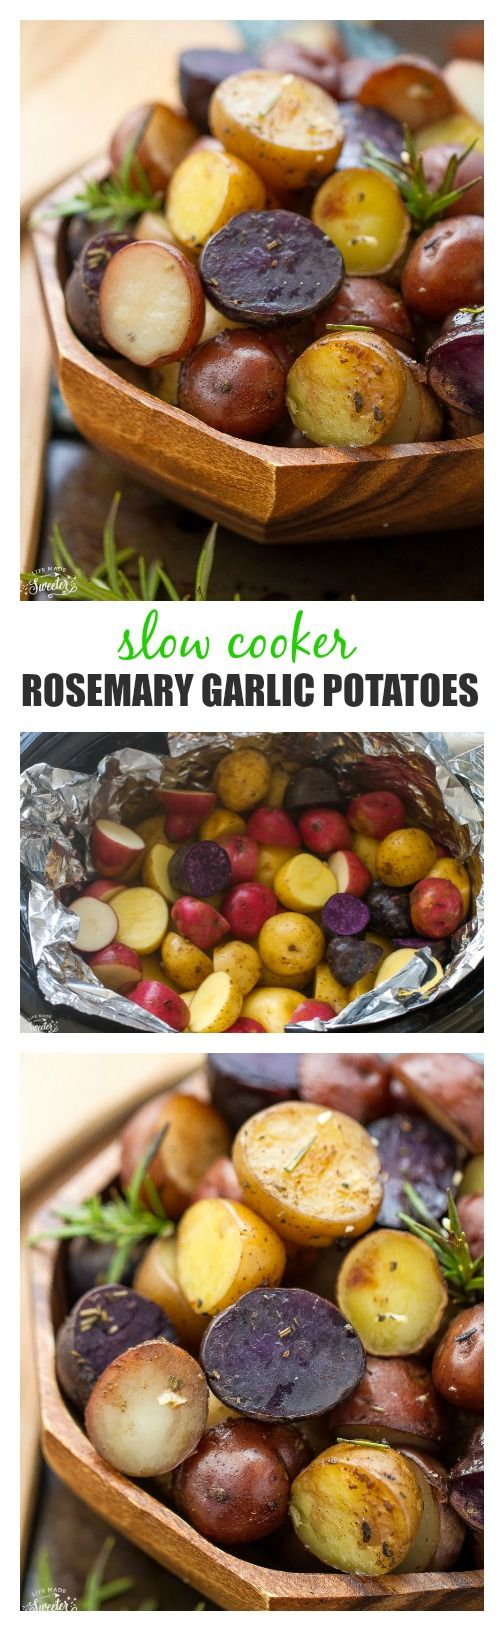 Tender and crisp tri-color potatoes loaded with rosemary, thyme, oregano, garlic and a sprinkle of parmesan. An easy and simple side dish made in the slow cooker.